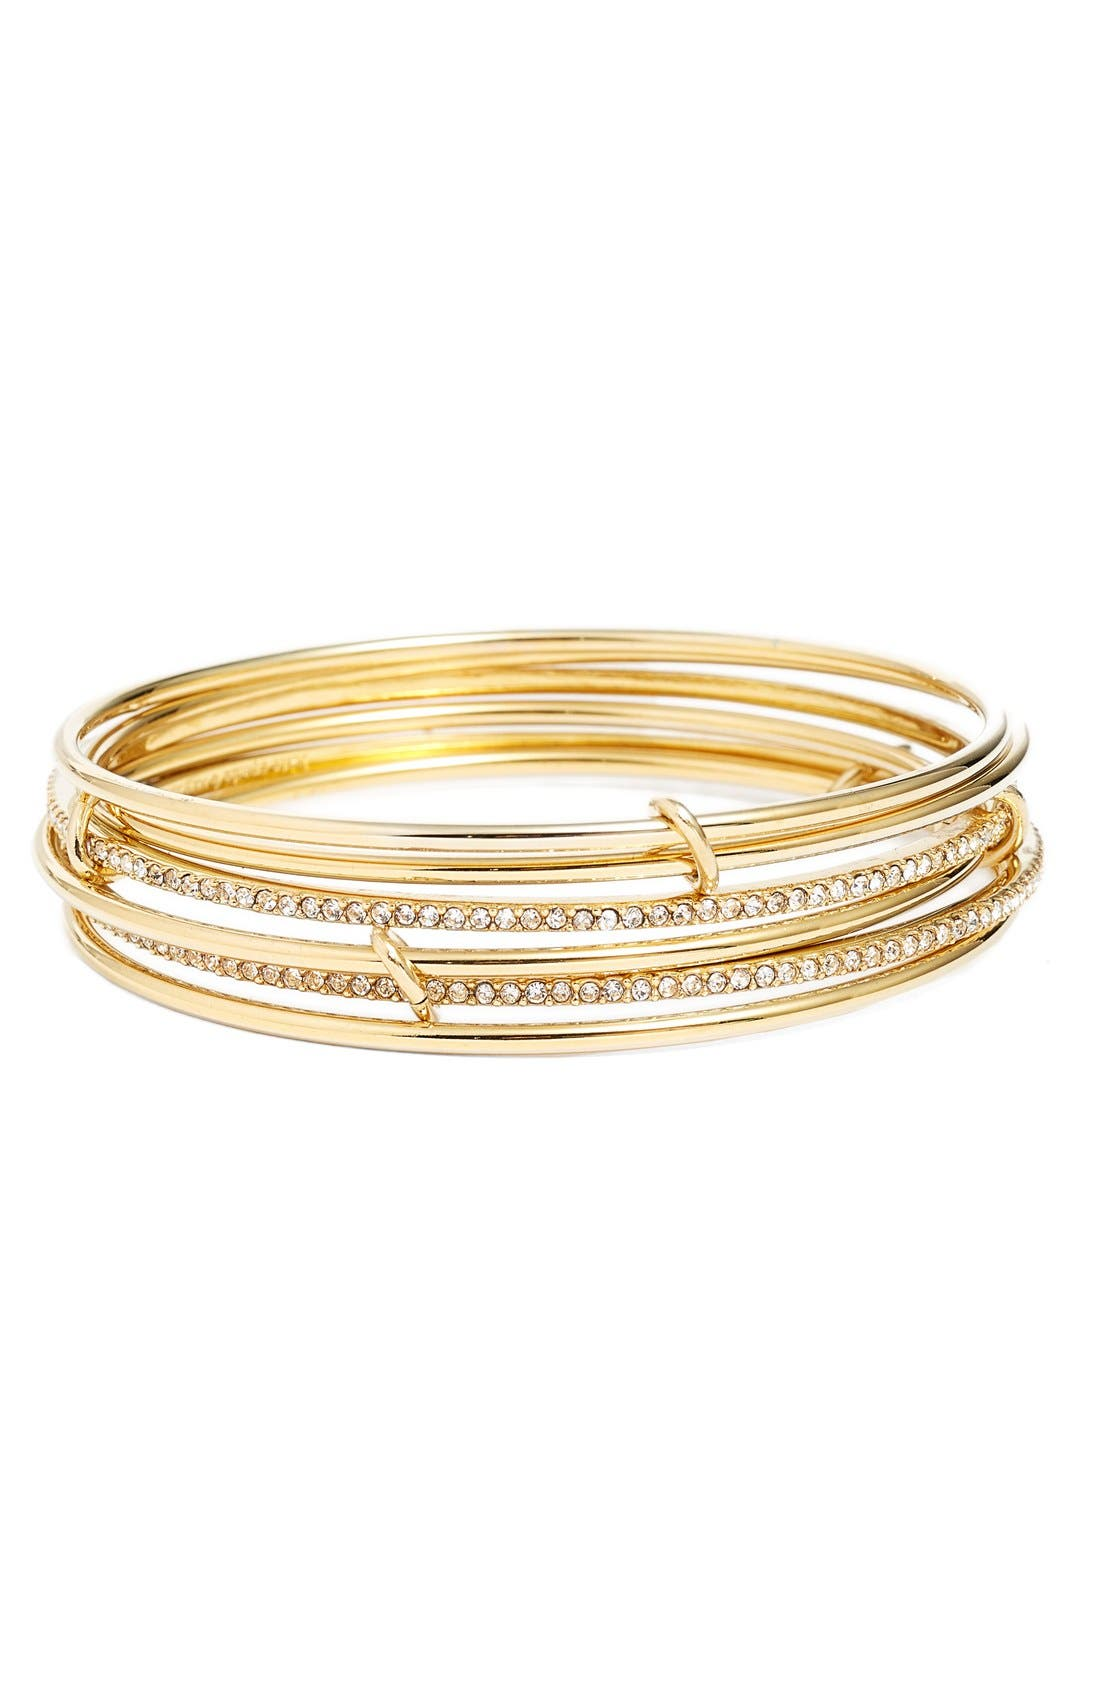 Alternate Image 1 Selected - kate spade new york 'stack attack' set of six bangles